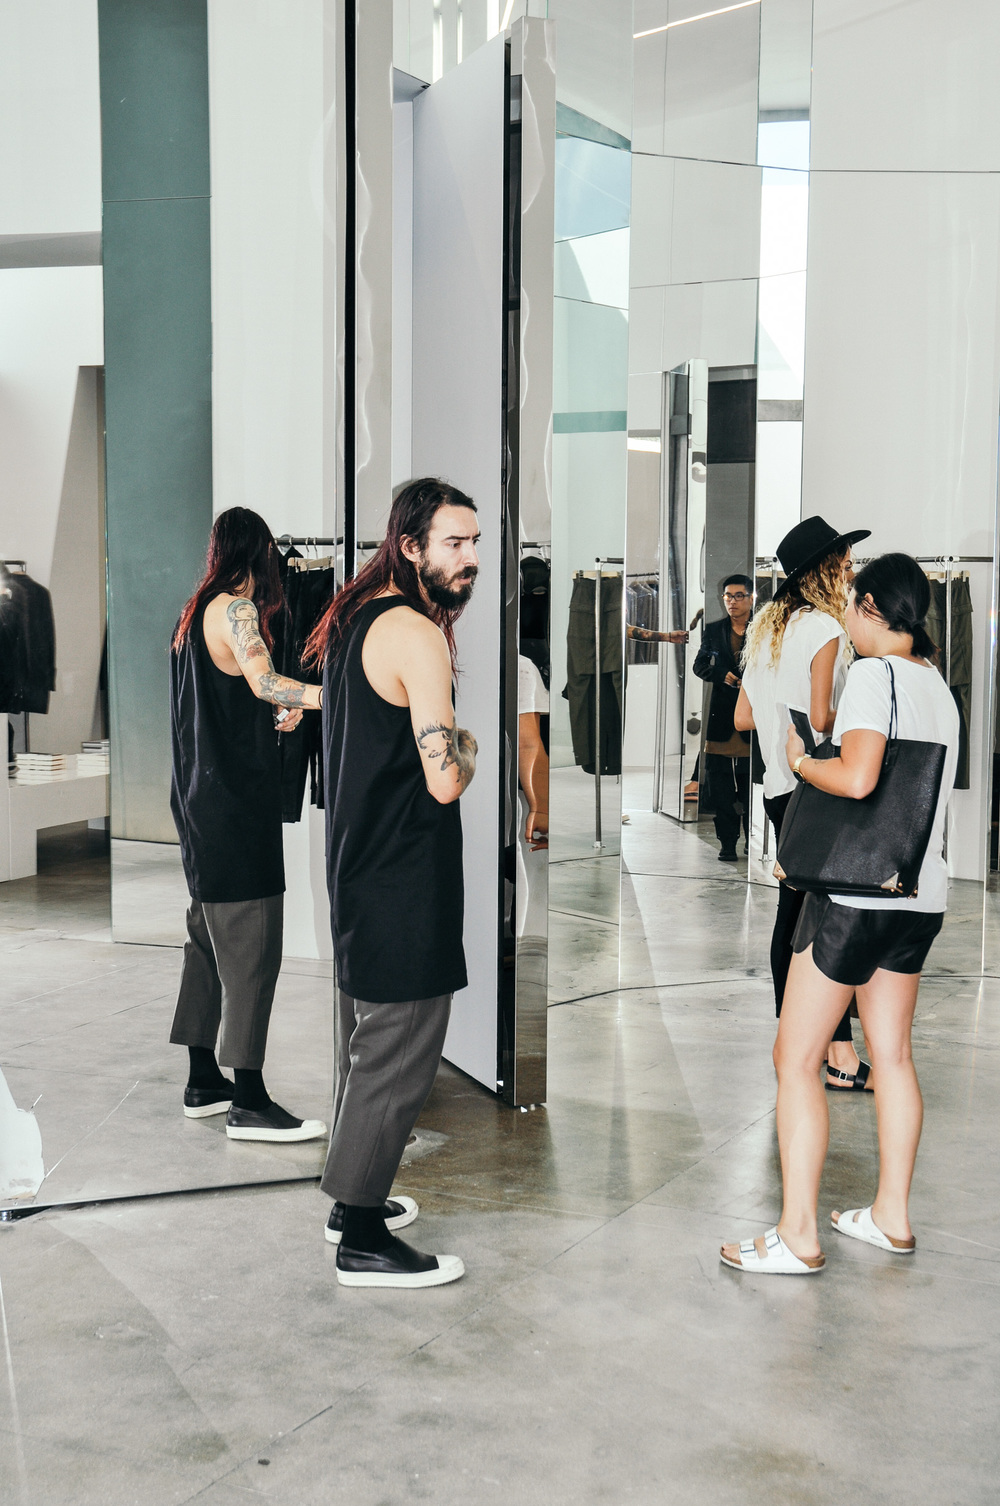 Tony at the Rick Owens flagship store on La Brea Ave in Los Angeles. / Photo: © Arthur W. Booker IV for SUSPEND Magazine